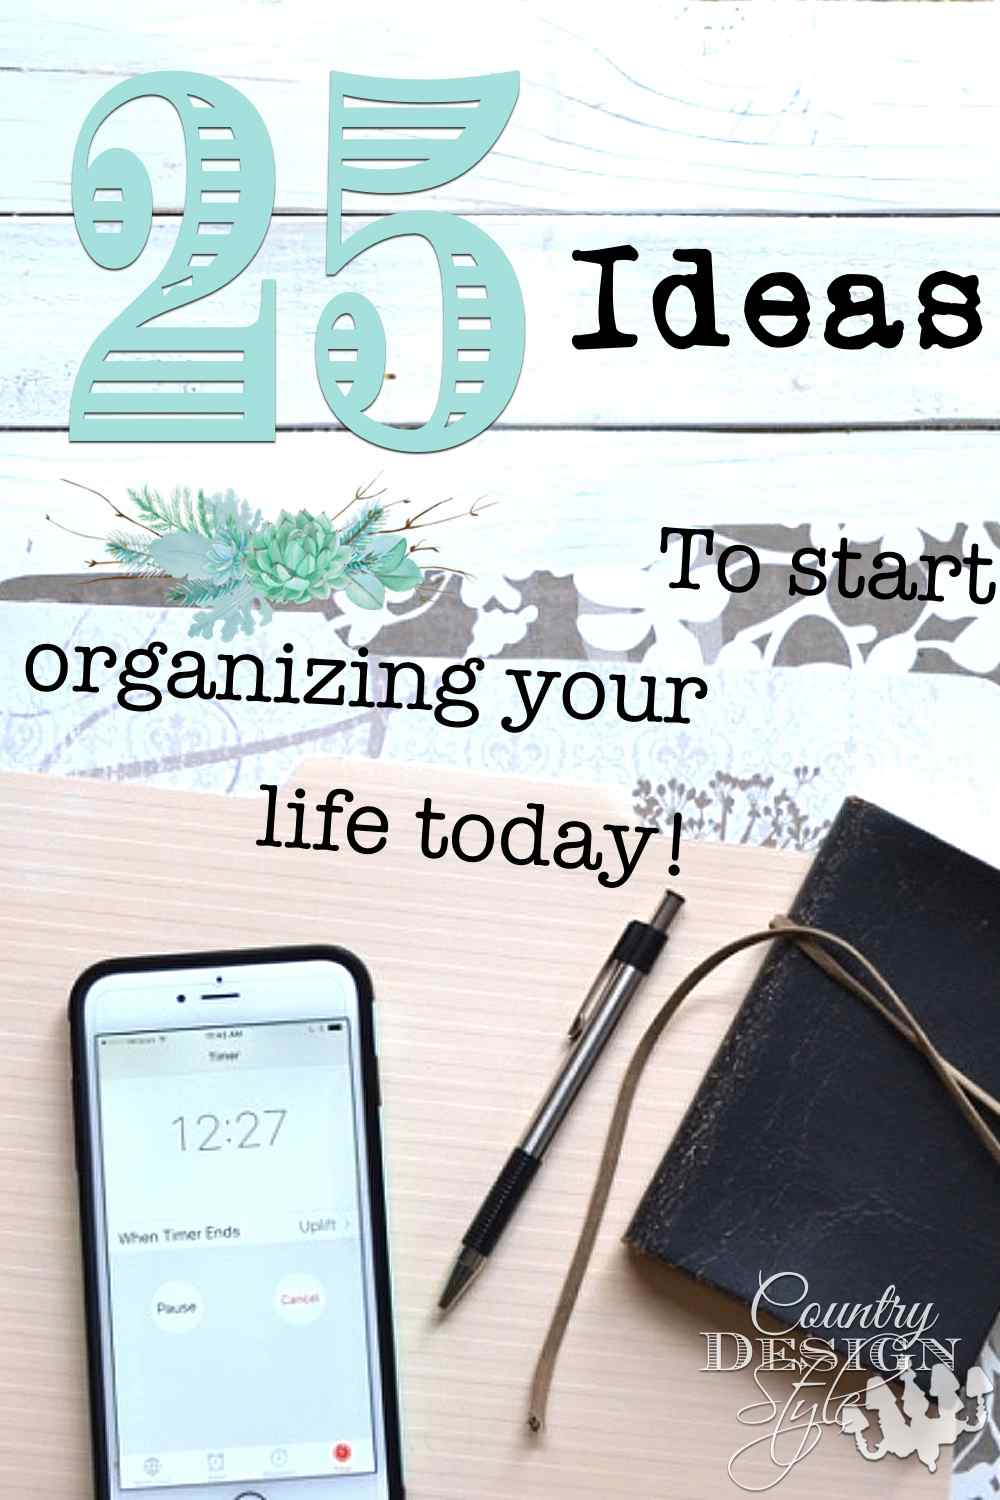 25 things to start Organizing today Pin   Country Design Style   countrydesignstyle.com